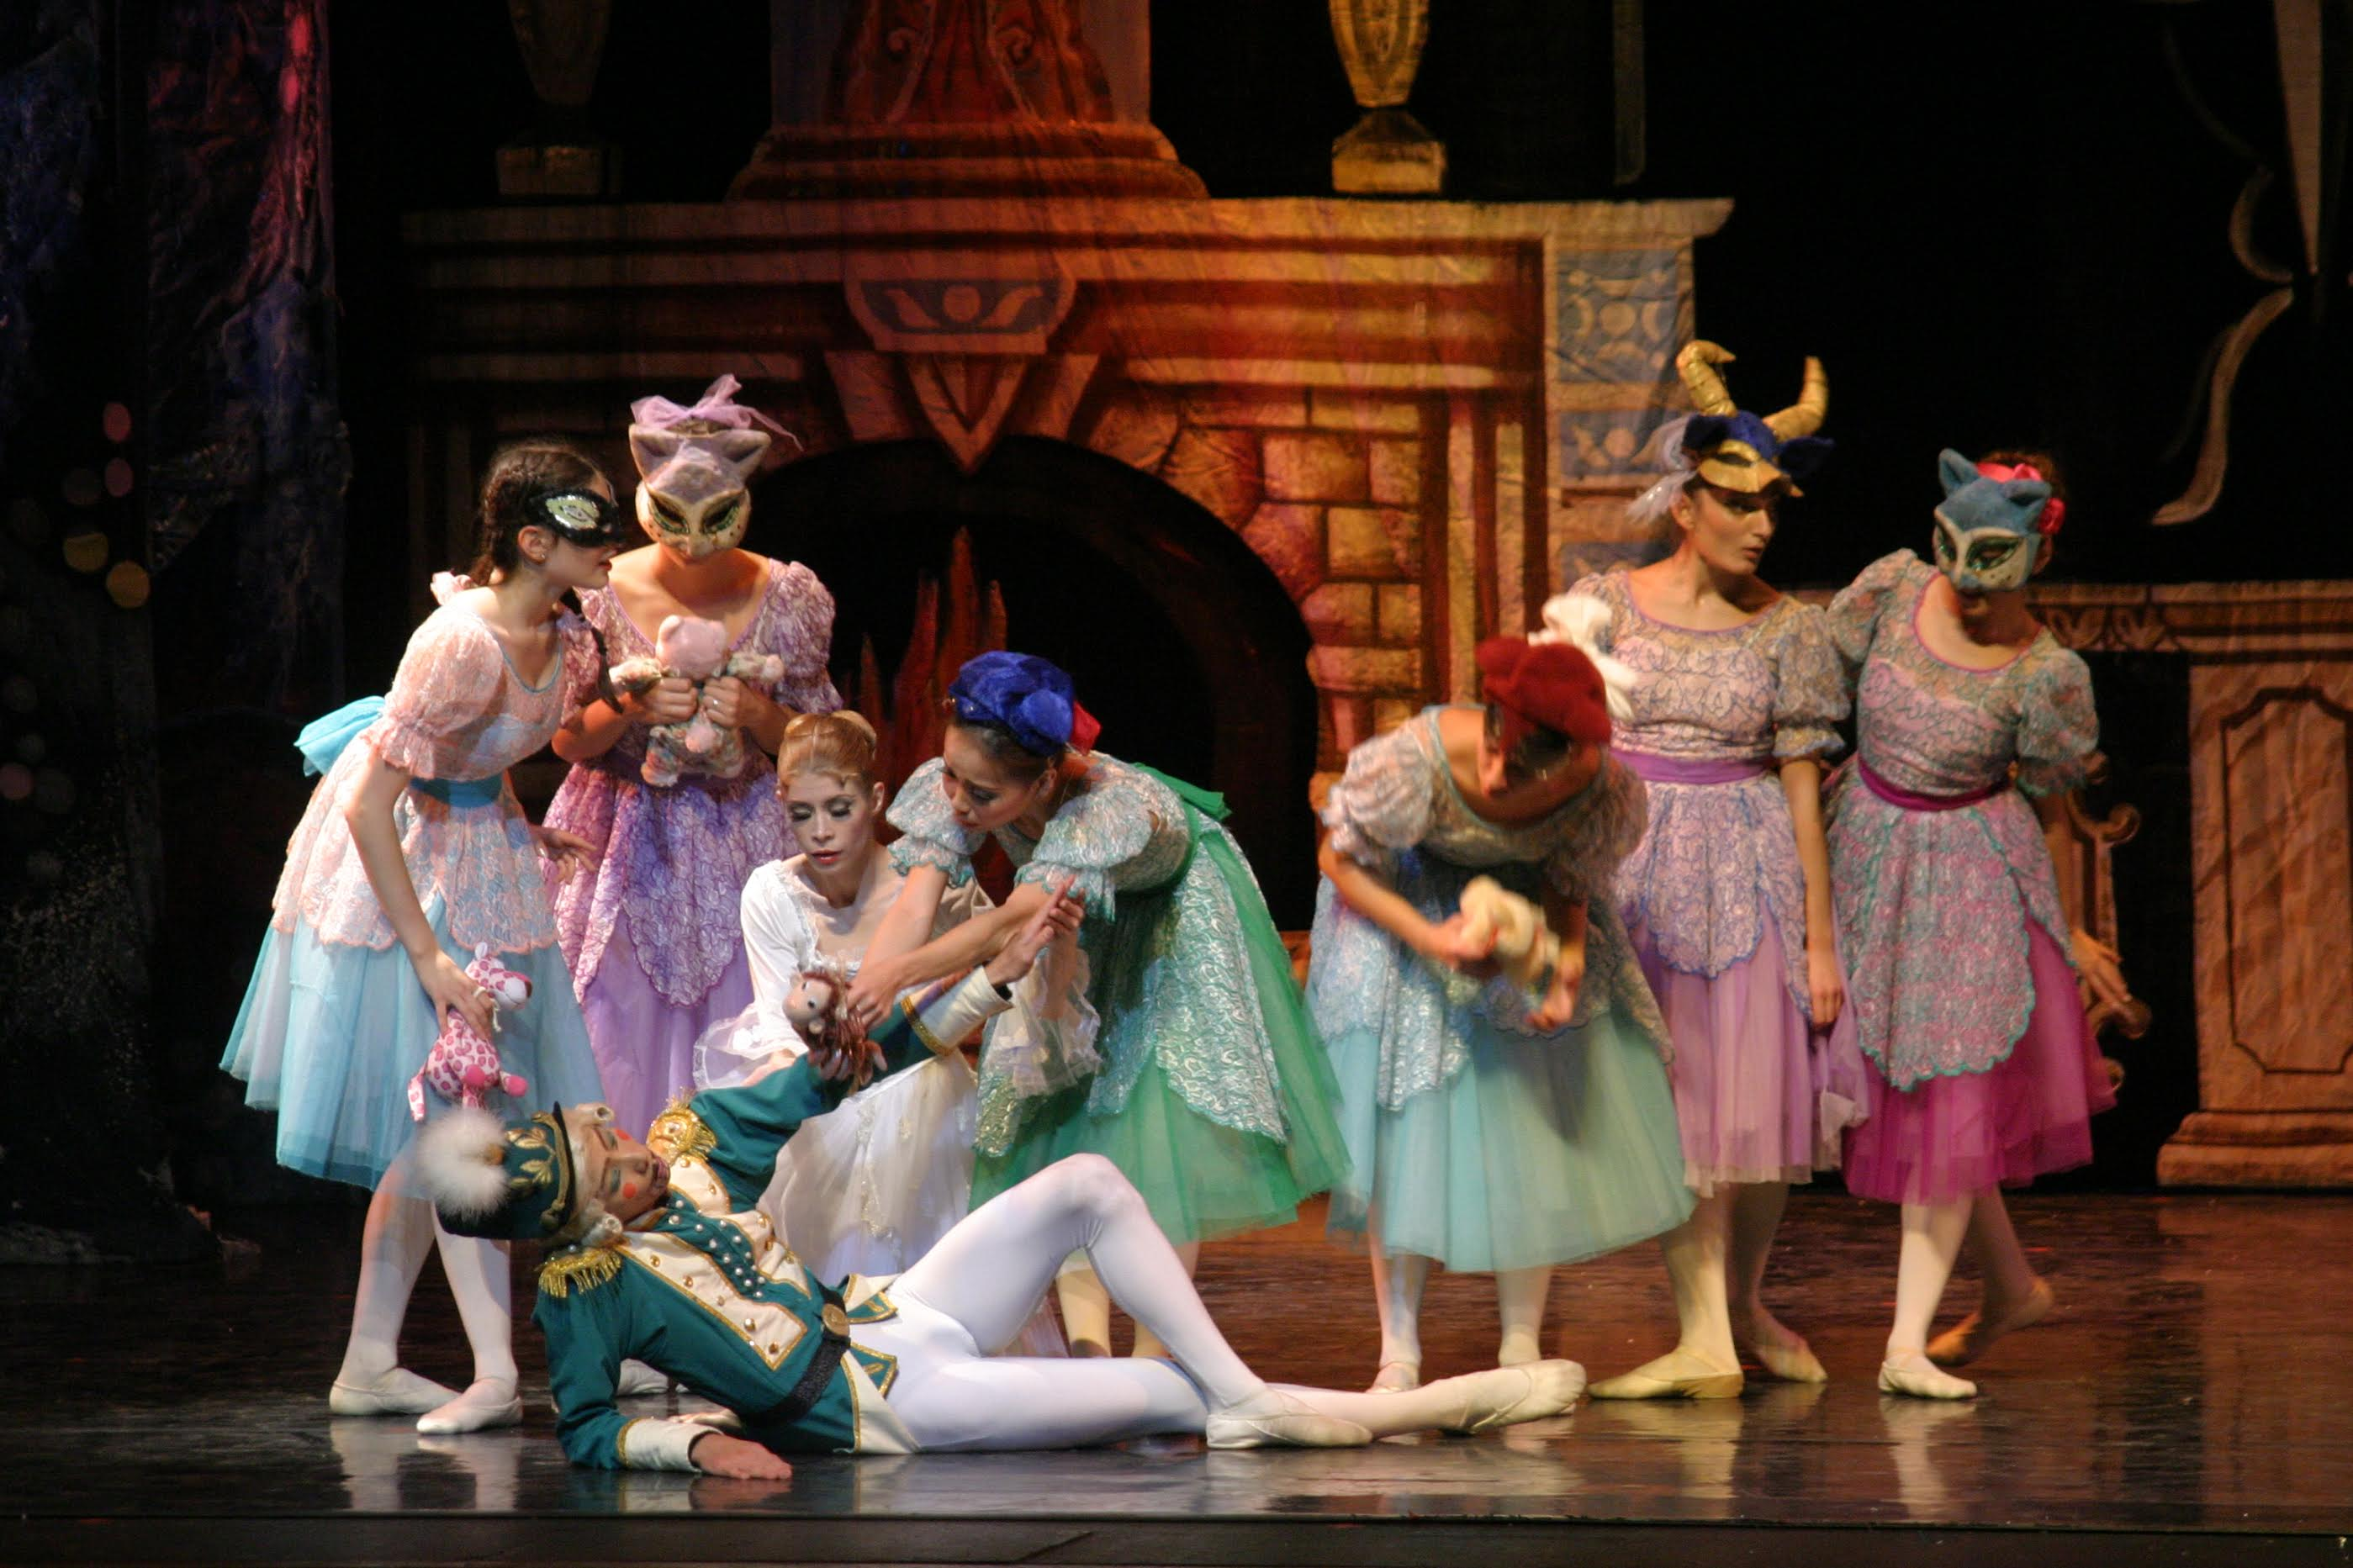 CASSE NOISETTE - THE MOSCOW CITY BALLET